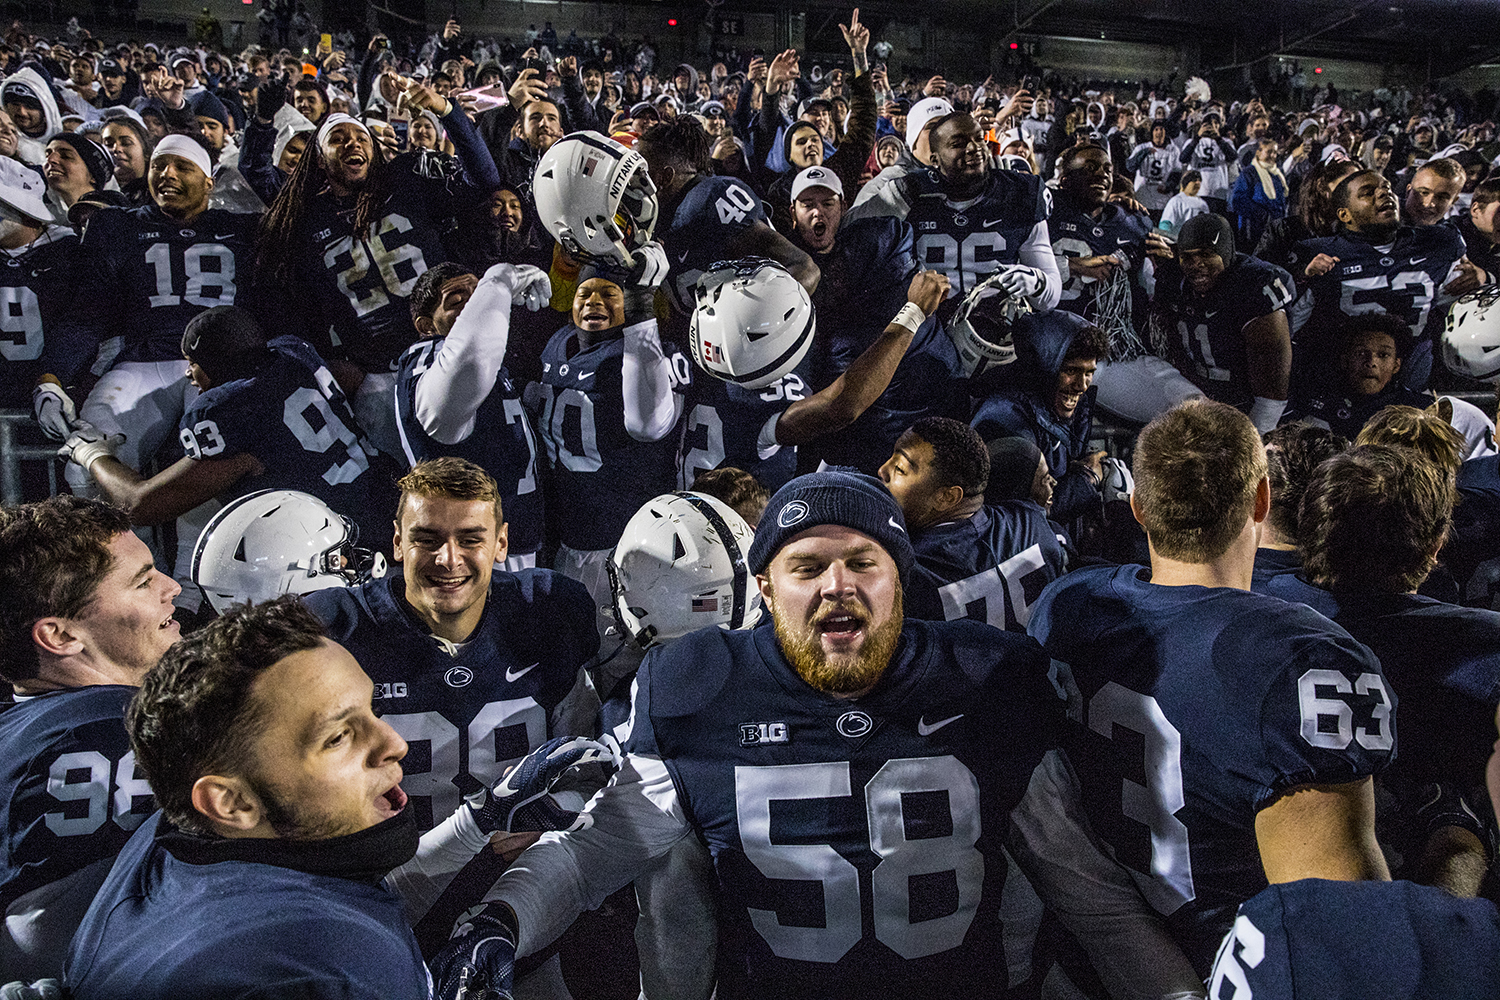 Penn State players celebrate in front of the student section  after Iowa's game against Penn State at Beaver Stadium on Saturday, October 27, 2018. The Nittany Lions defeated the Hawkeyes 30-24.